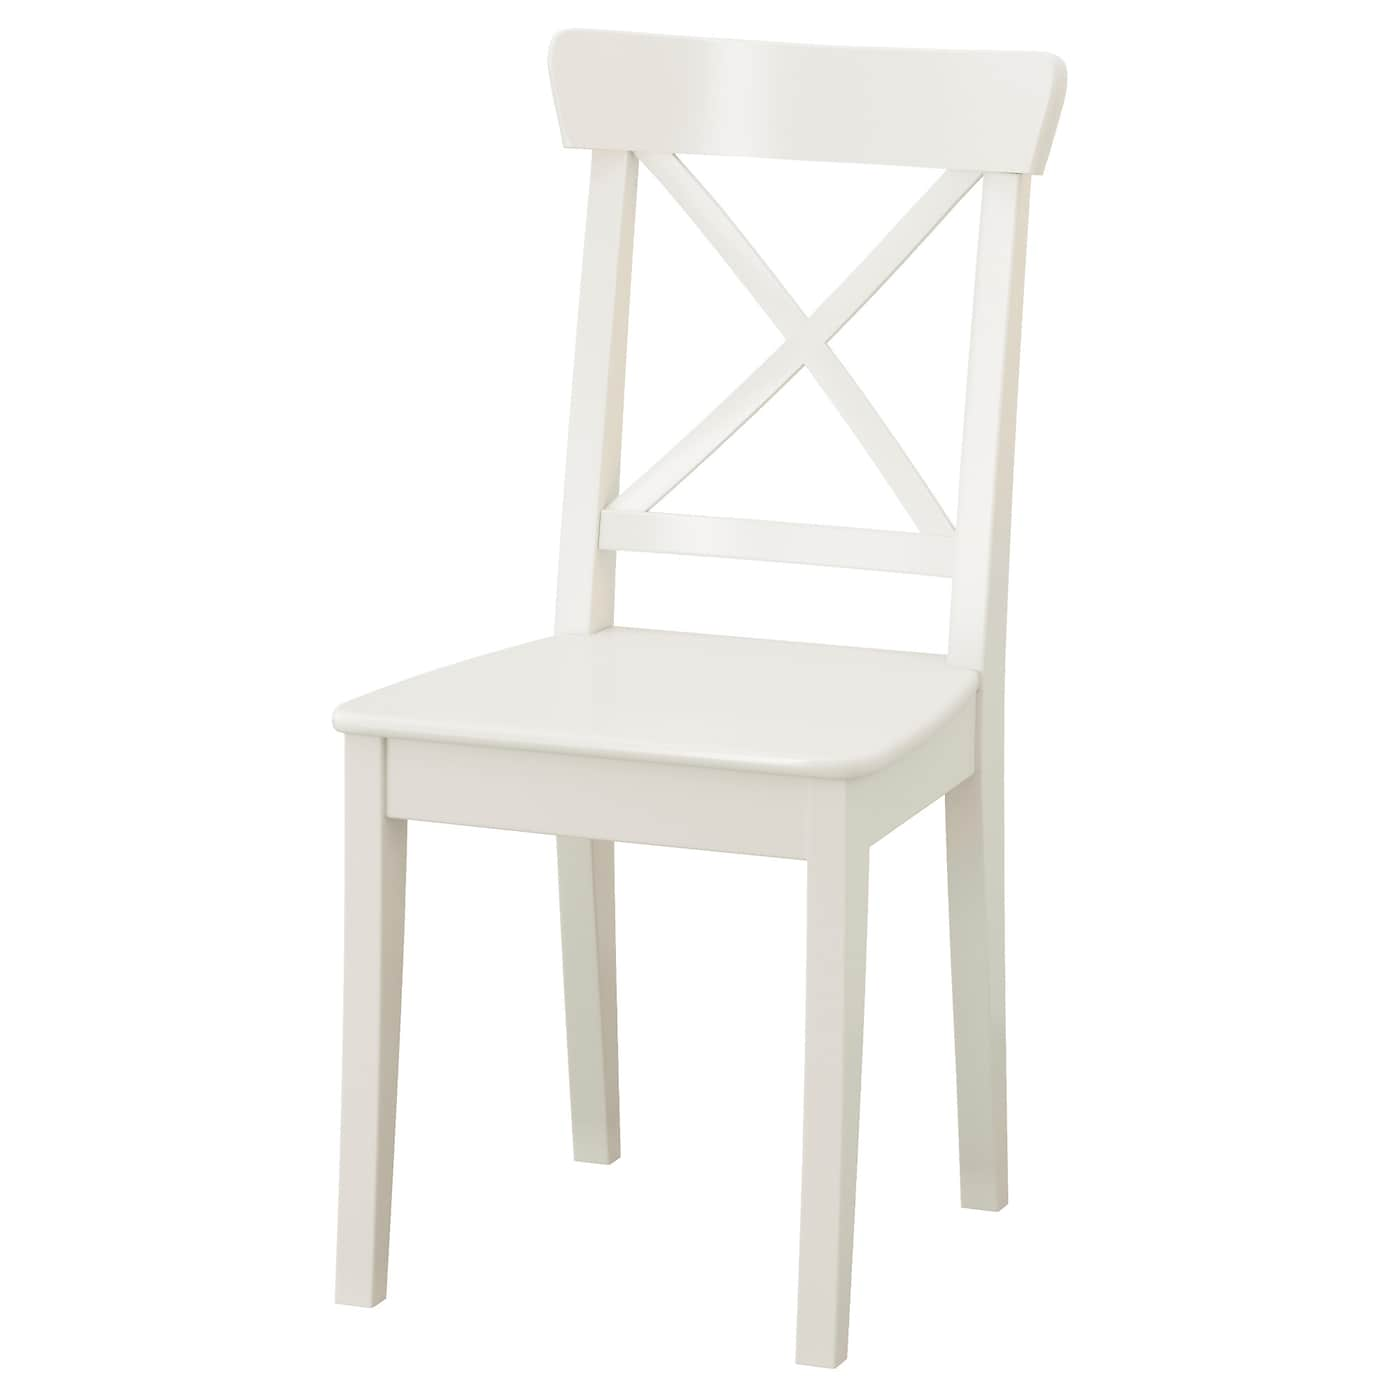 Ingolf Chair White Ikea